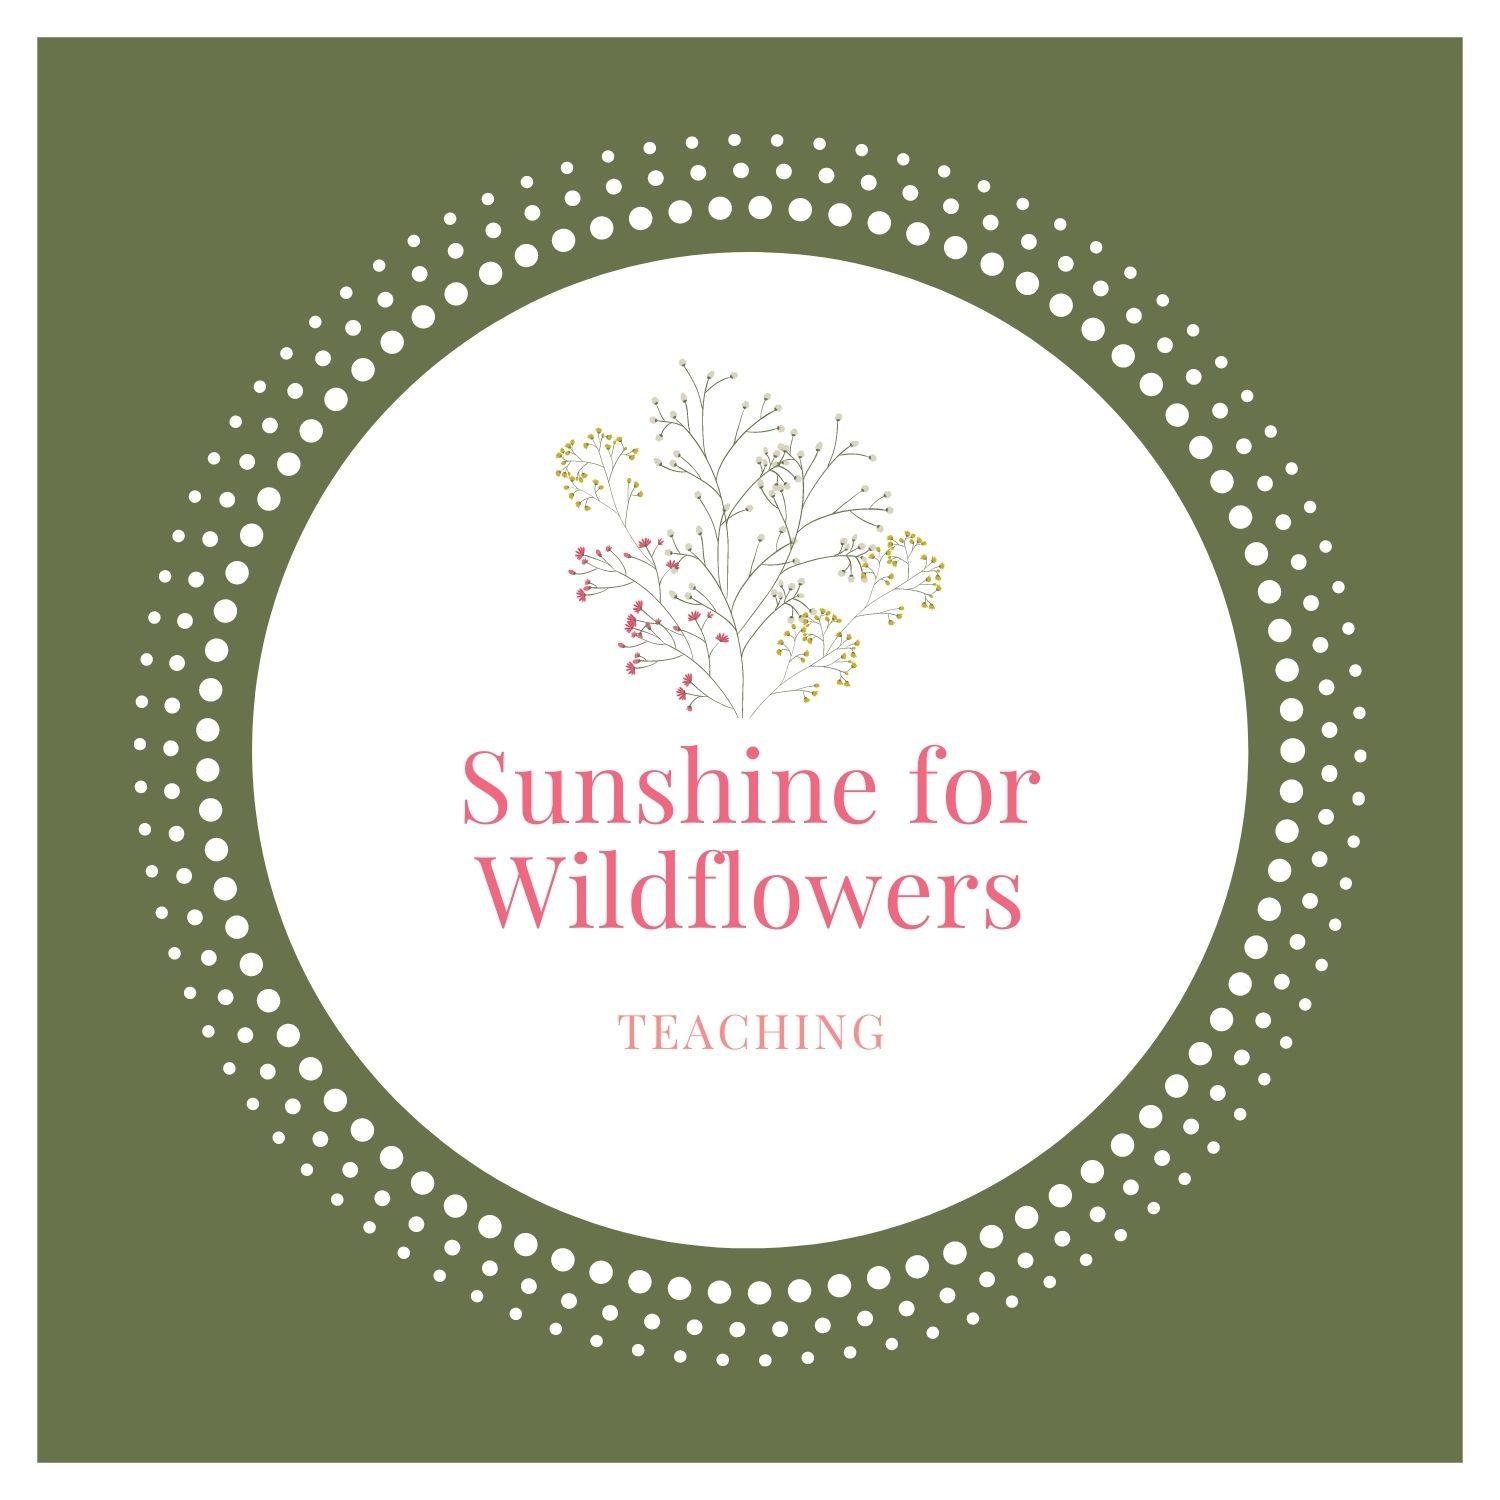 sunshine-for-my-wildflowers.jpg